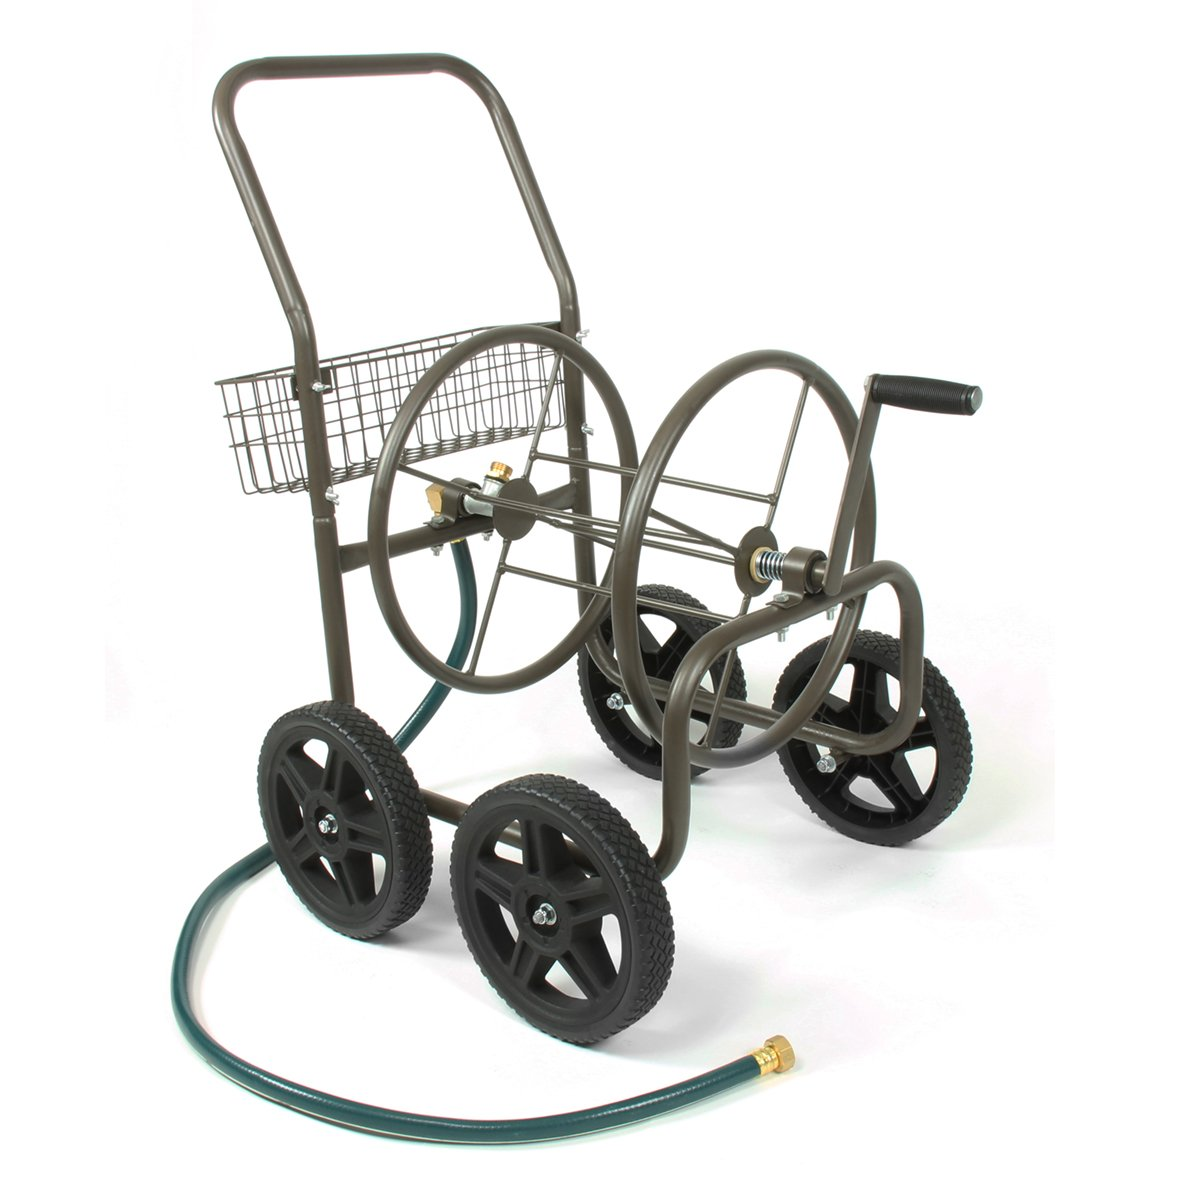 Amazon.com : Liberty Garden Products 871-S Residential Grade 4-Wheel ...